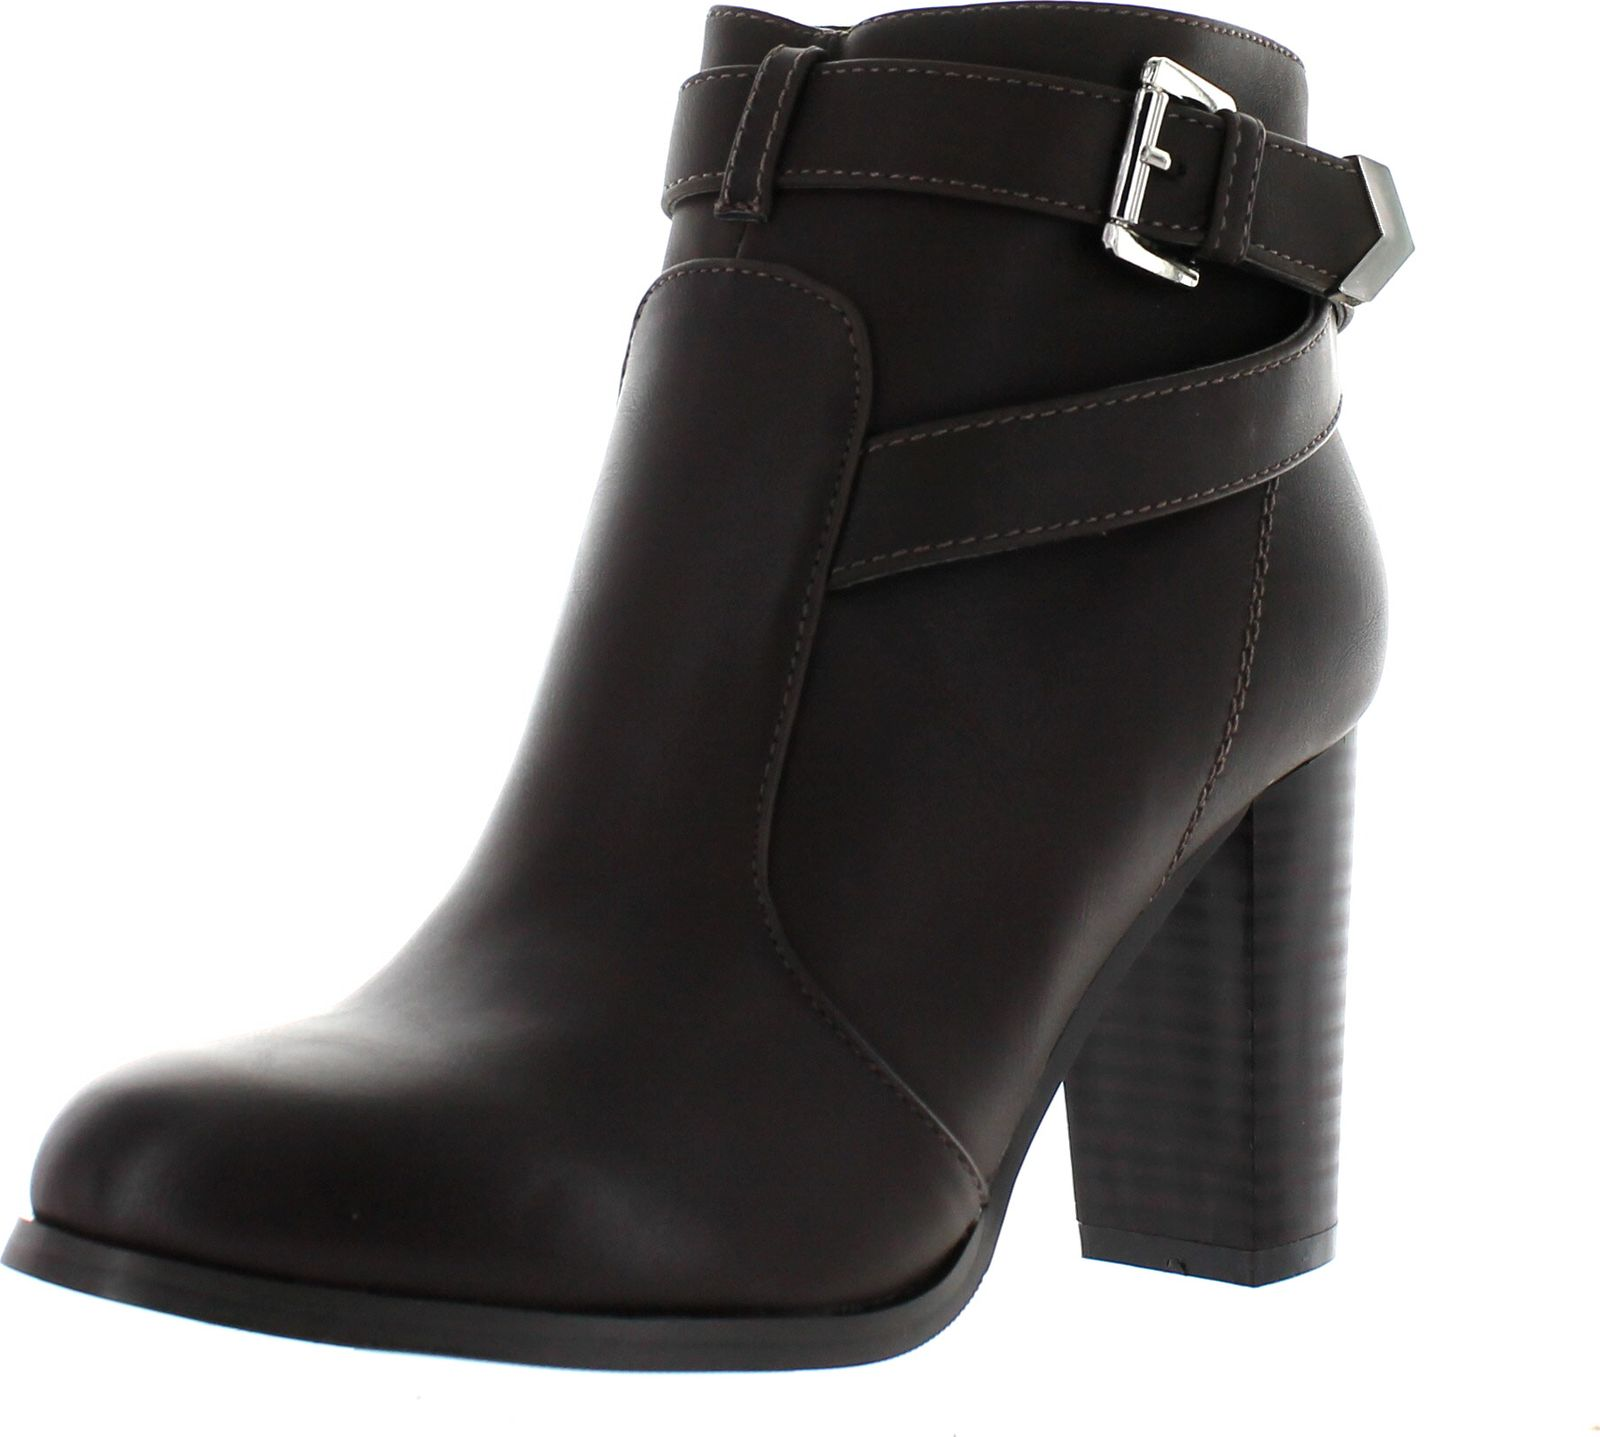 Kayla-83 Women's Stylish Stacked Chunky Heel Ankle Booties